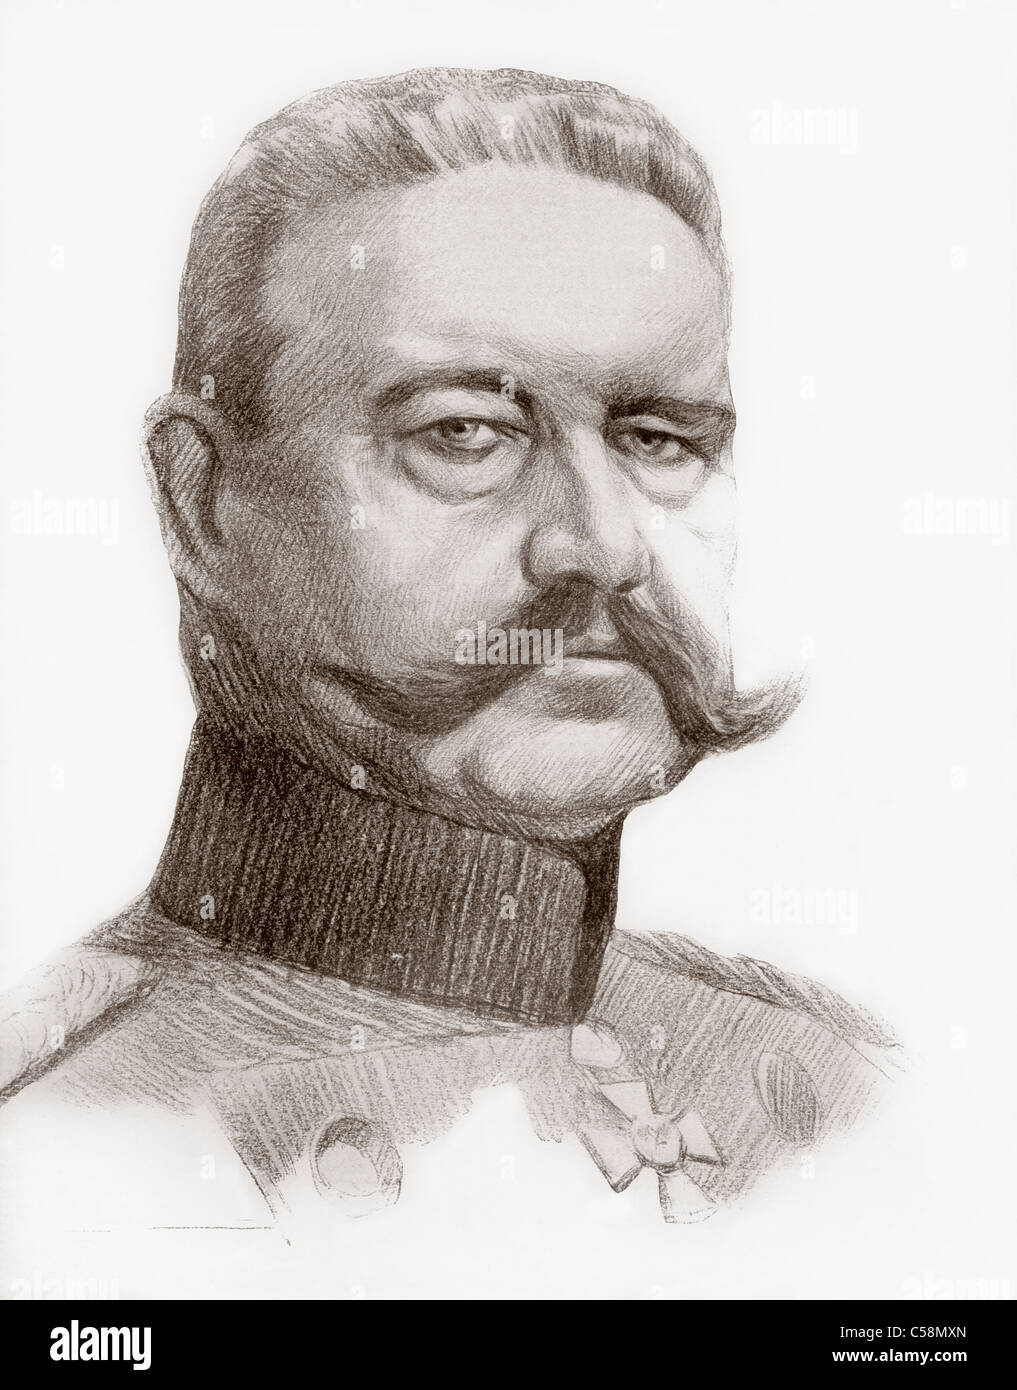 Paul Von Hindenburg, 1847 - 1934. German Field Marshal and second President of Germany. - Stock Image